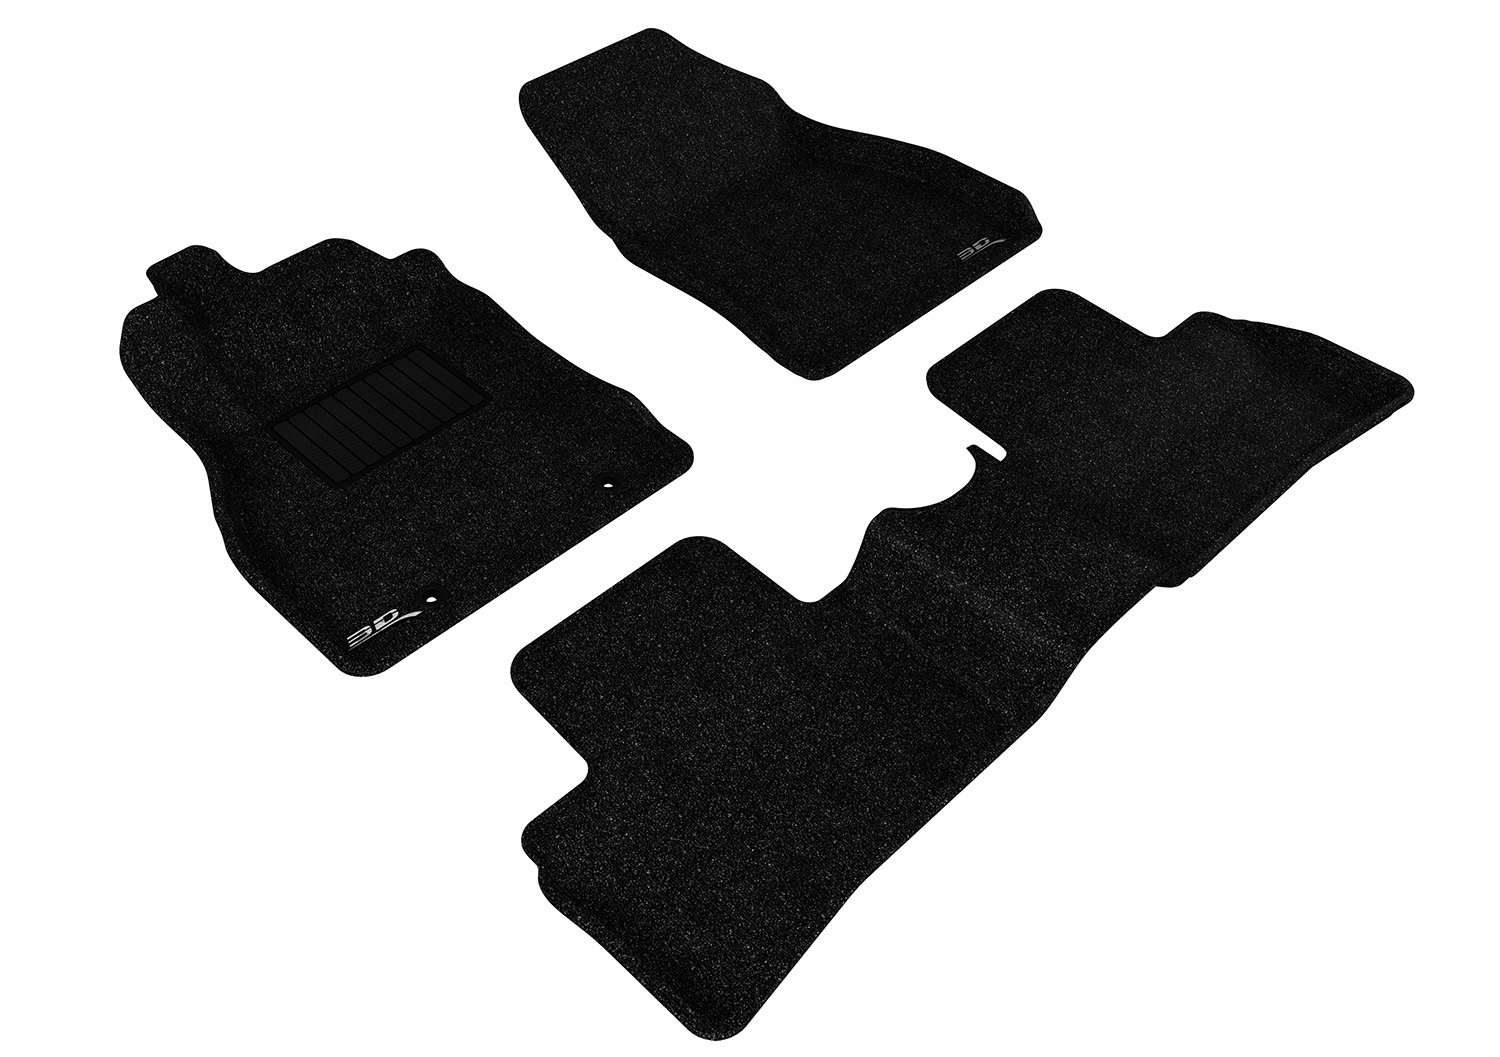 Classic Carpet 3D MAXpider Second Row Custom Fit Floor Mat for Select Nissan Juke Models L1NS06422201 Gray